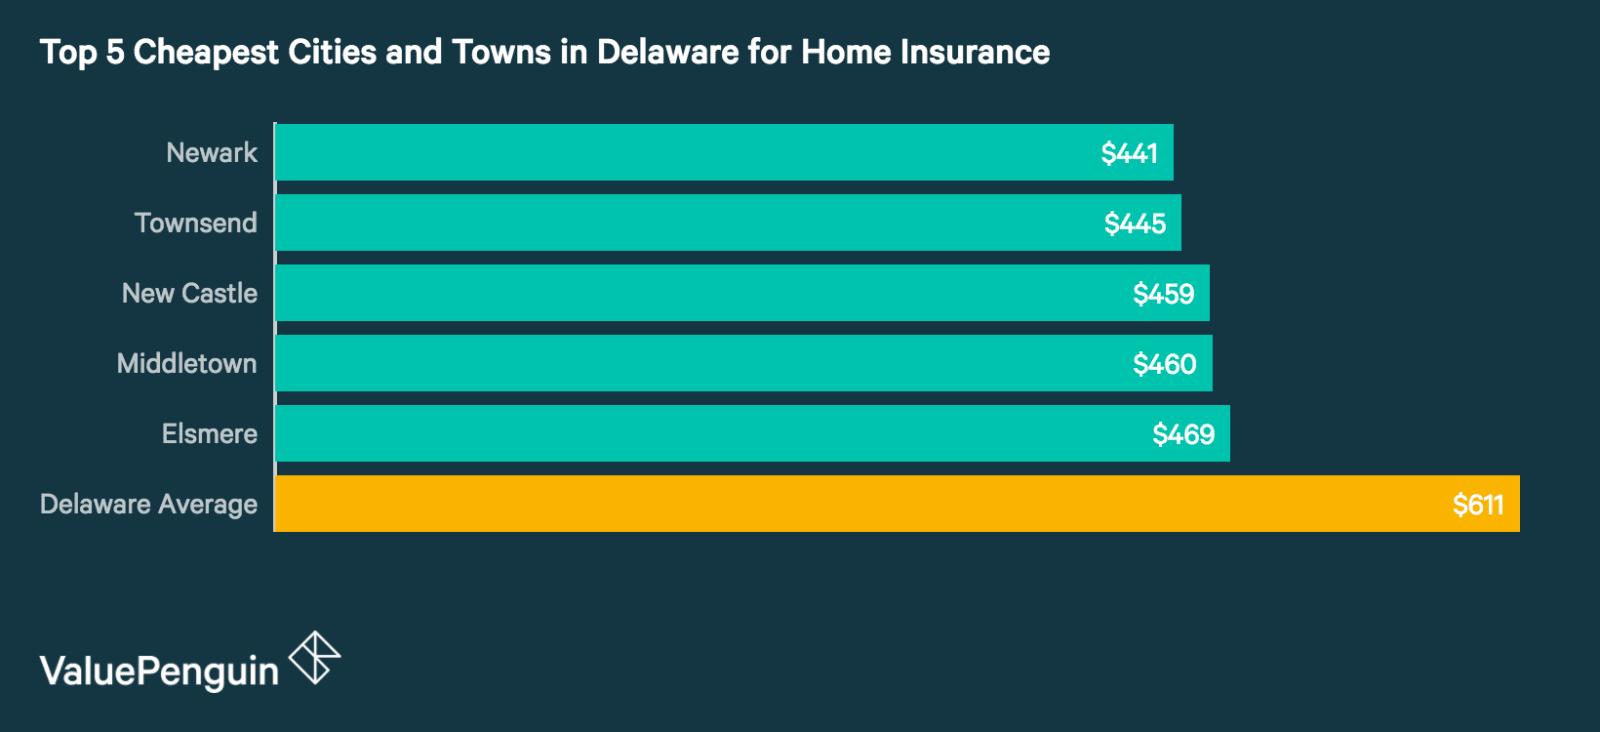 Top 5 Cheapest Cities and Towns in Delaware for Homeowners Insurance